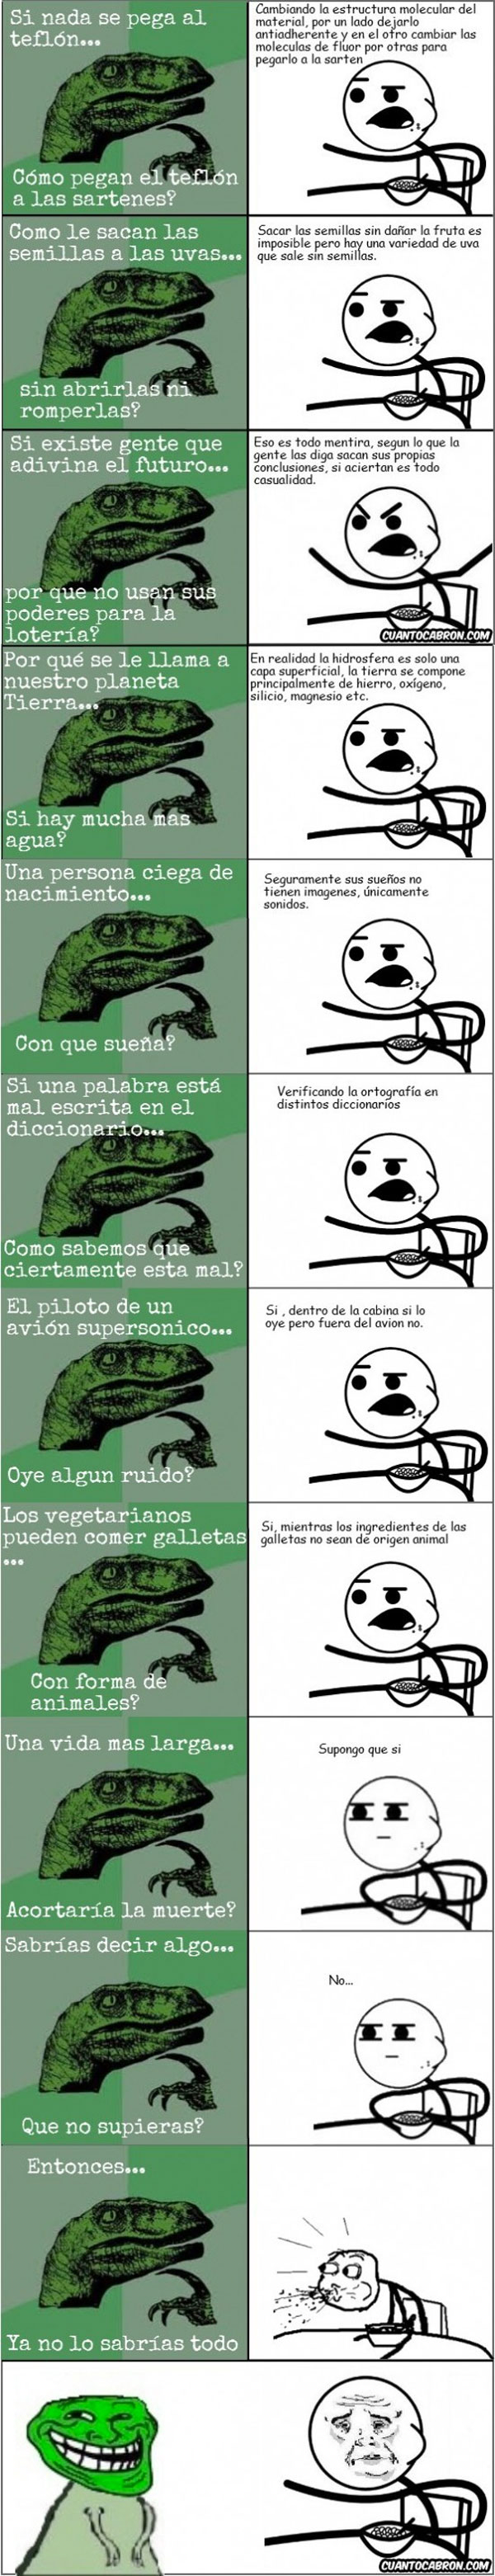 Filosoraptor vs Cereal guy